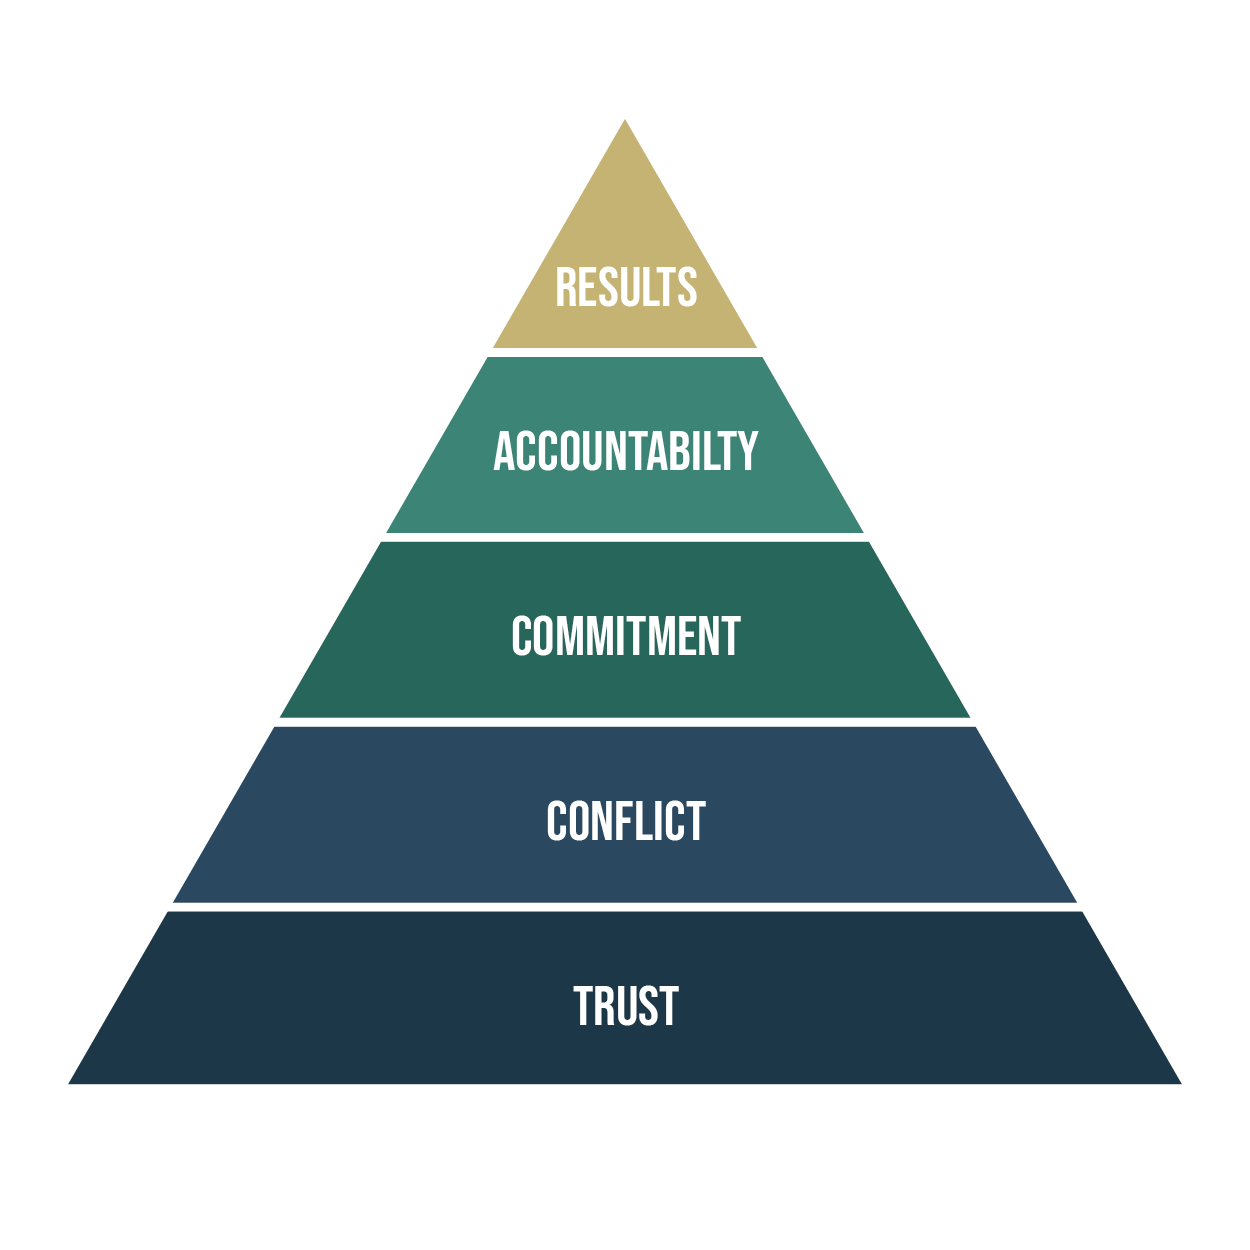 A pyramid with the words results, acountability, commitment, conflict, and trust, that are important elements for team effectiveness